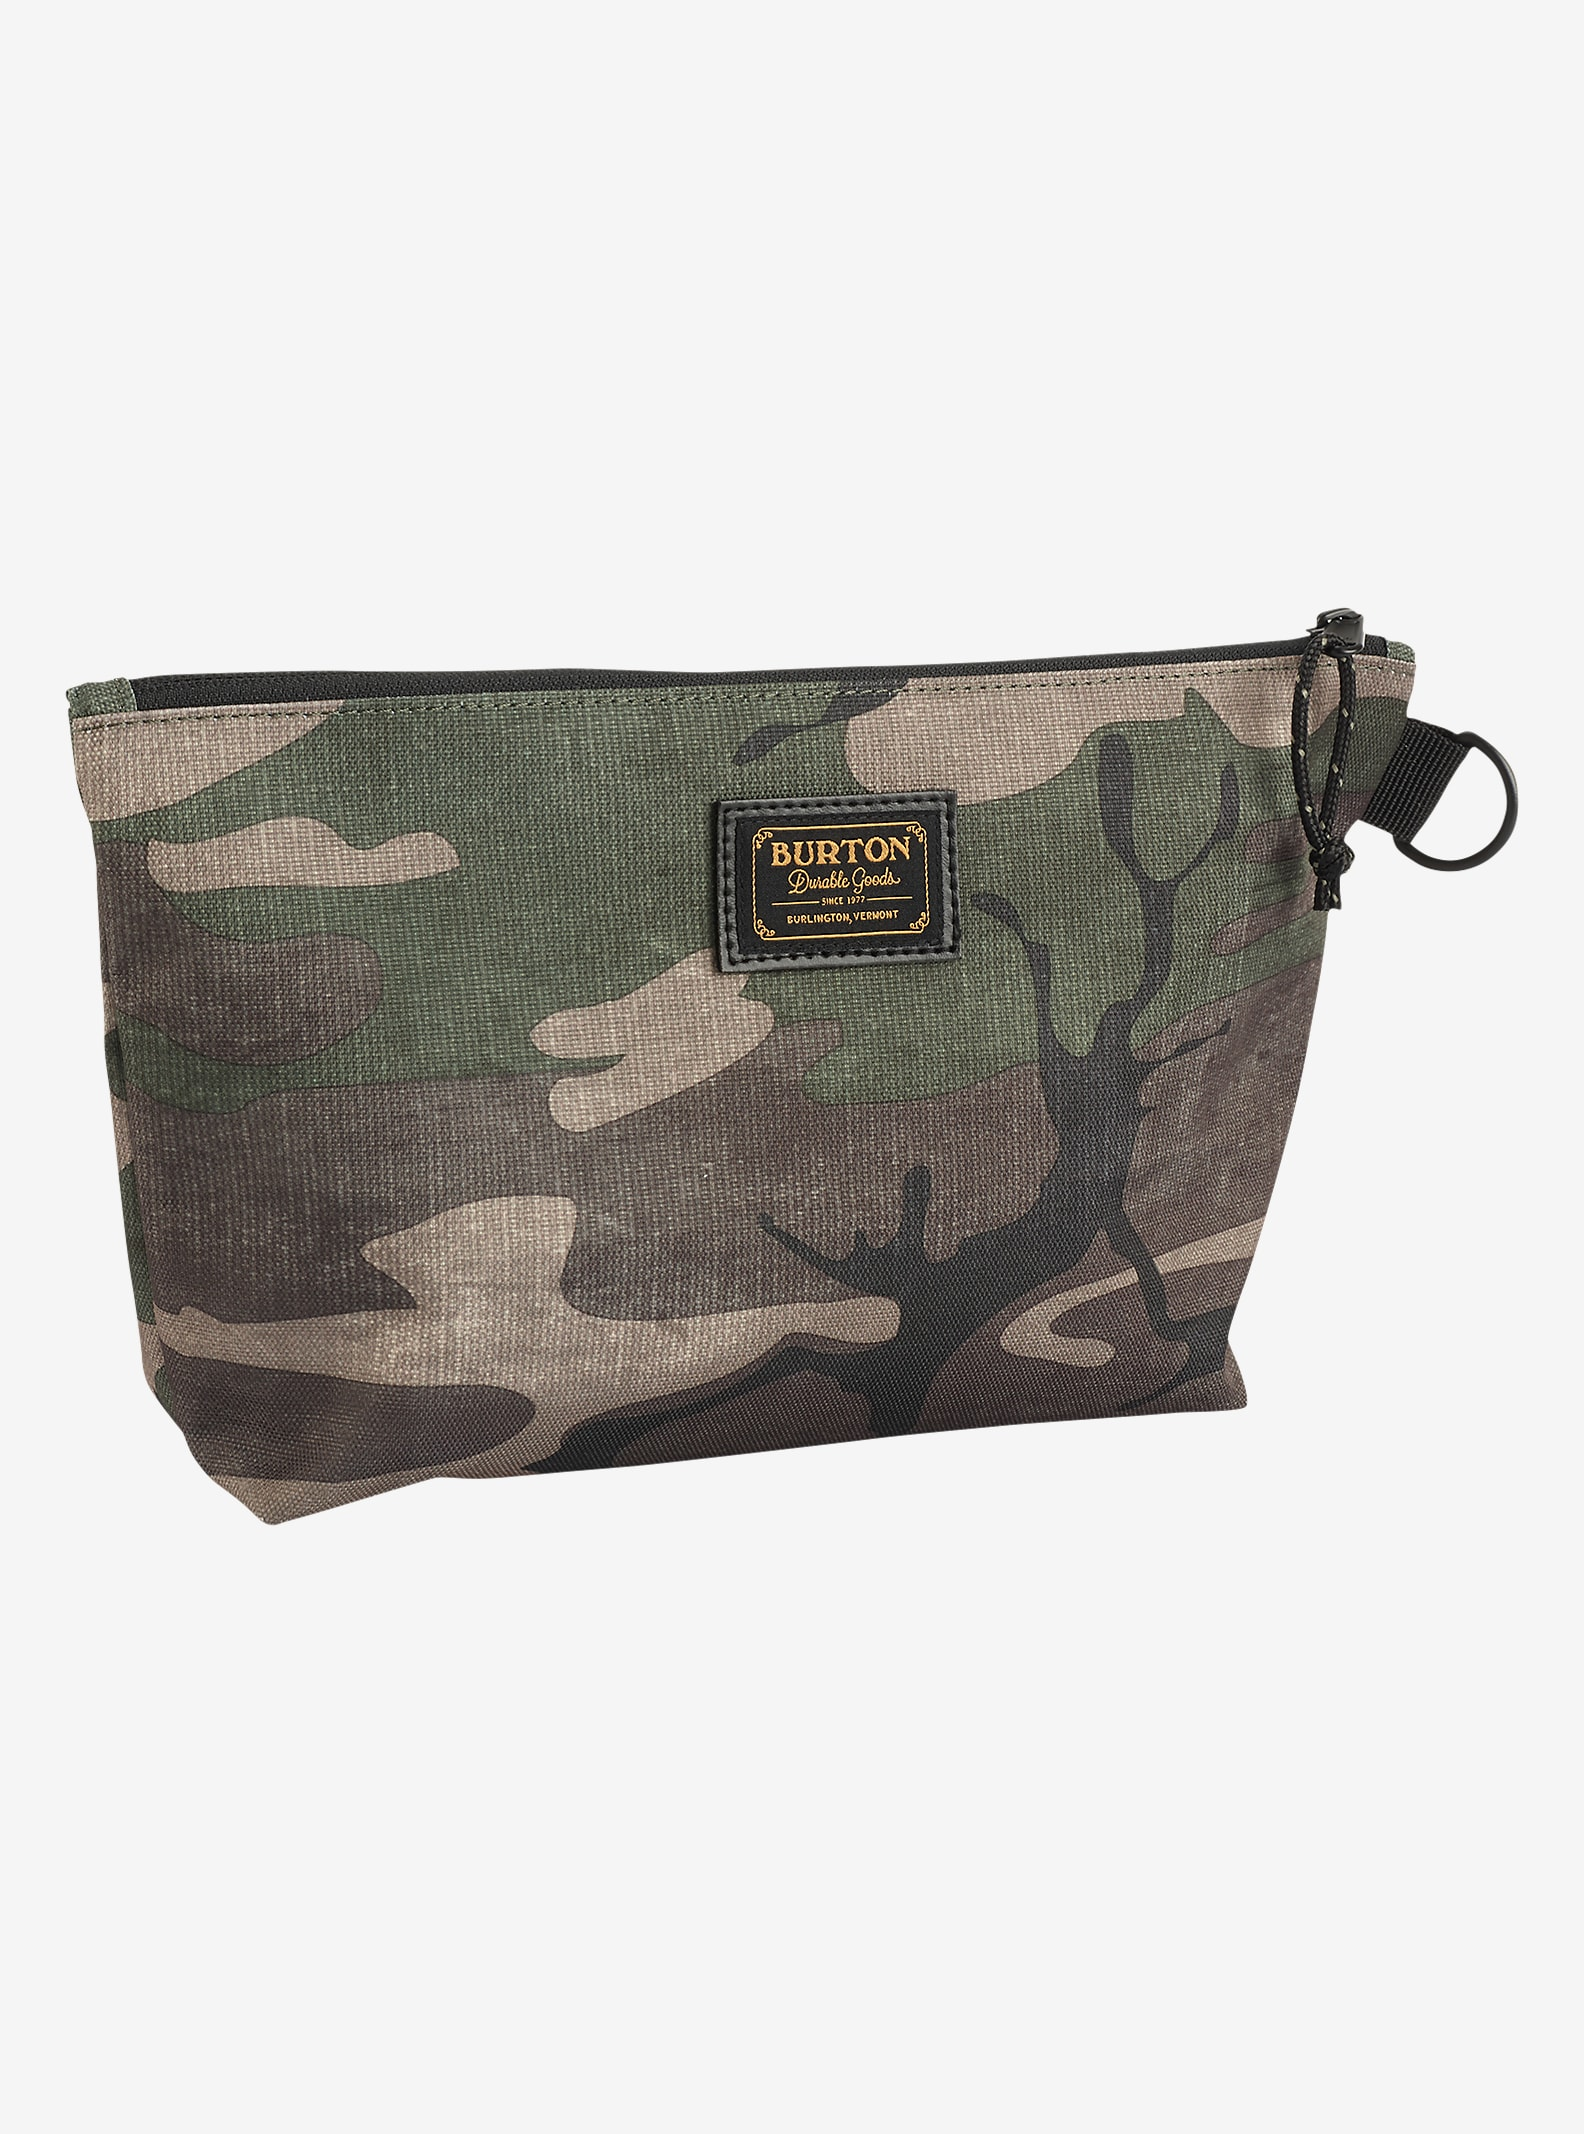 Burton Utility Pouch Medium shown in Bkamo Print